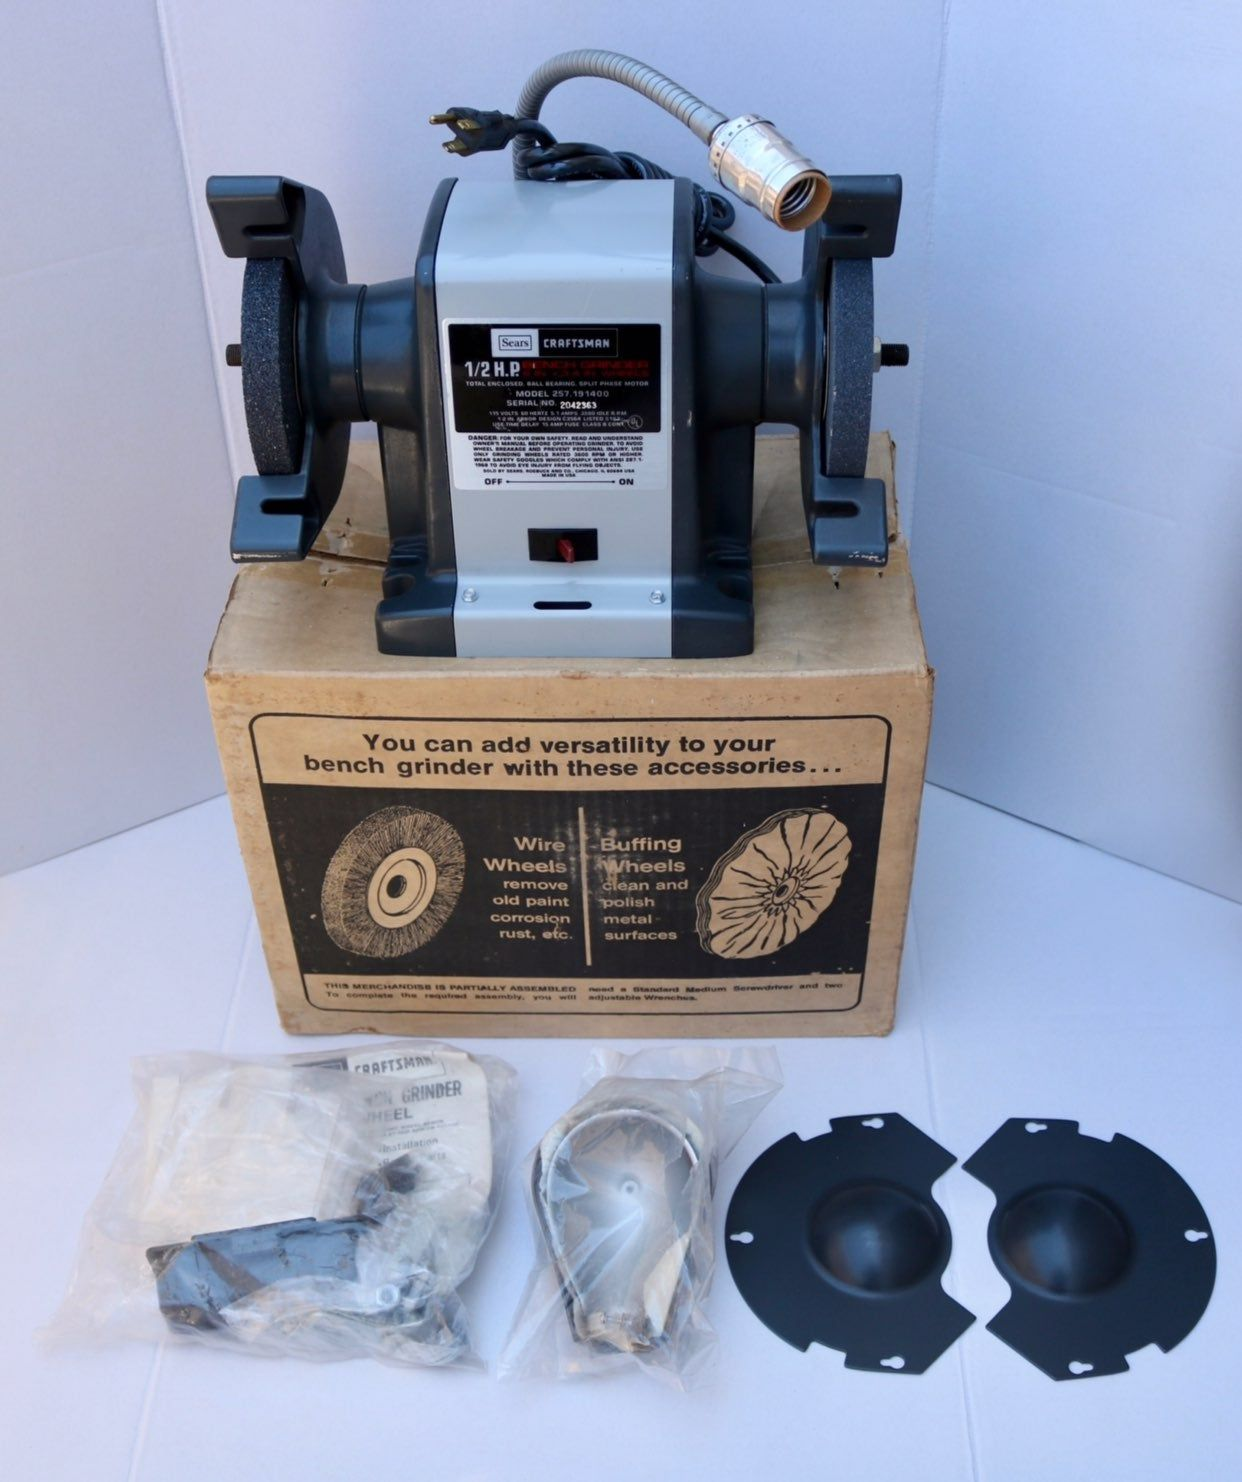 Up For Purchase Is A Vintage Sears Craftsman 1 2 H P Bench Block Grinder 6 X 3 4 Wheels 115 V A C 3580 Rpm Model N Sears Craftsman Craftsman Bench Grinder